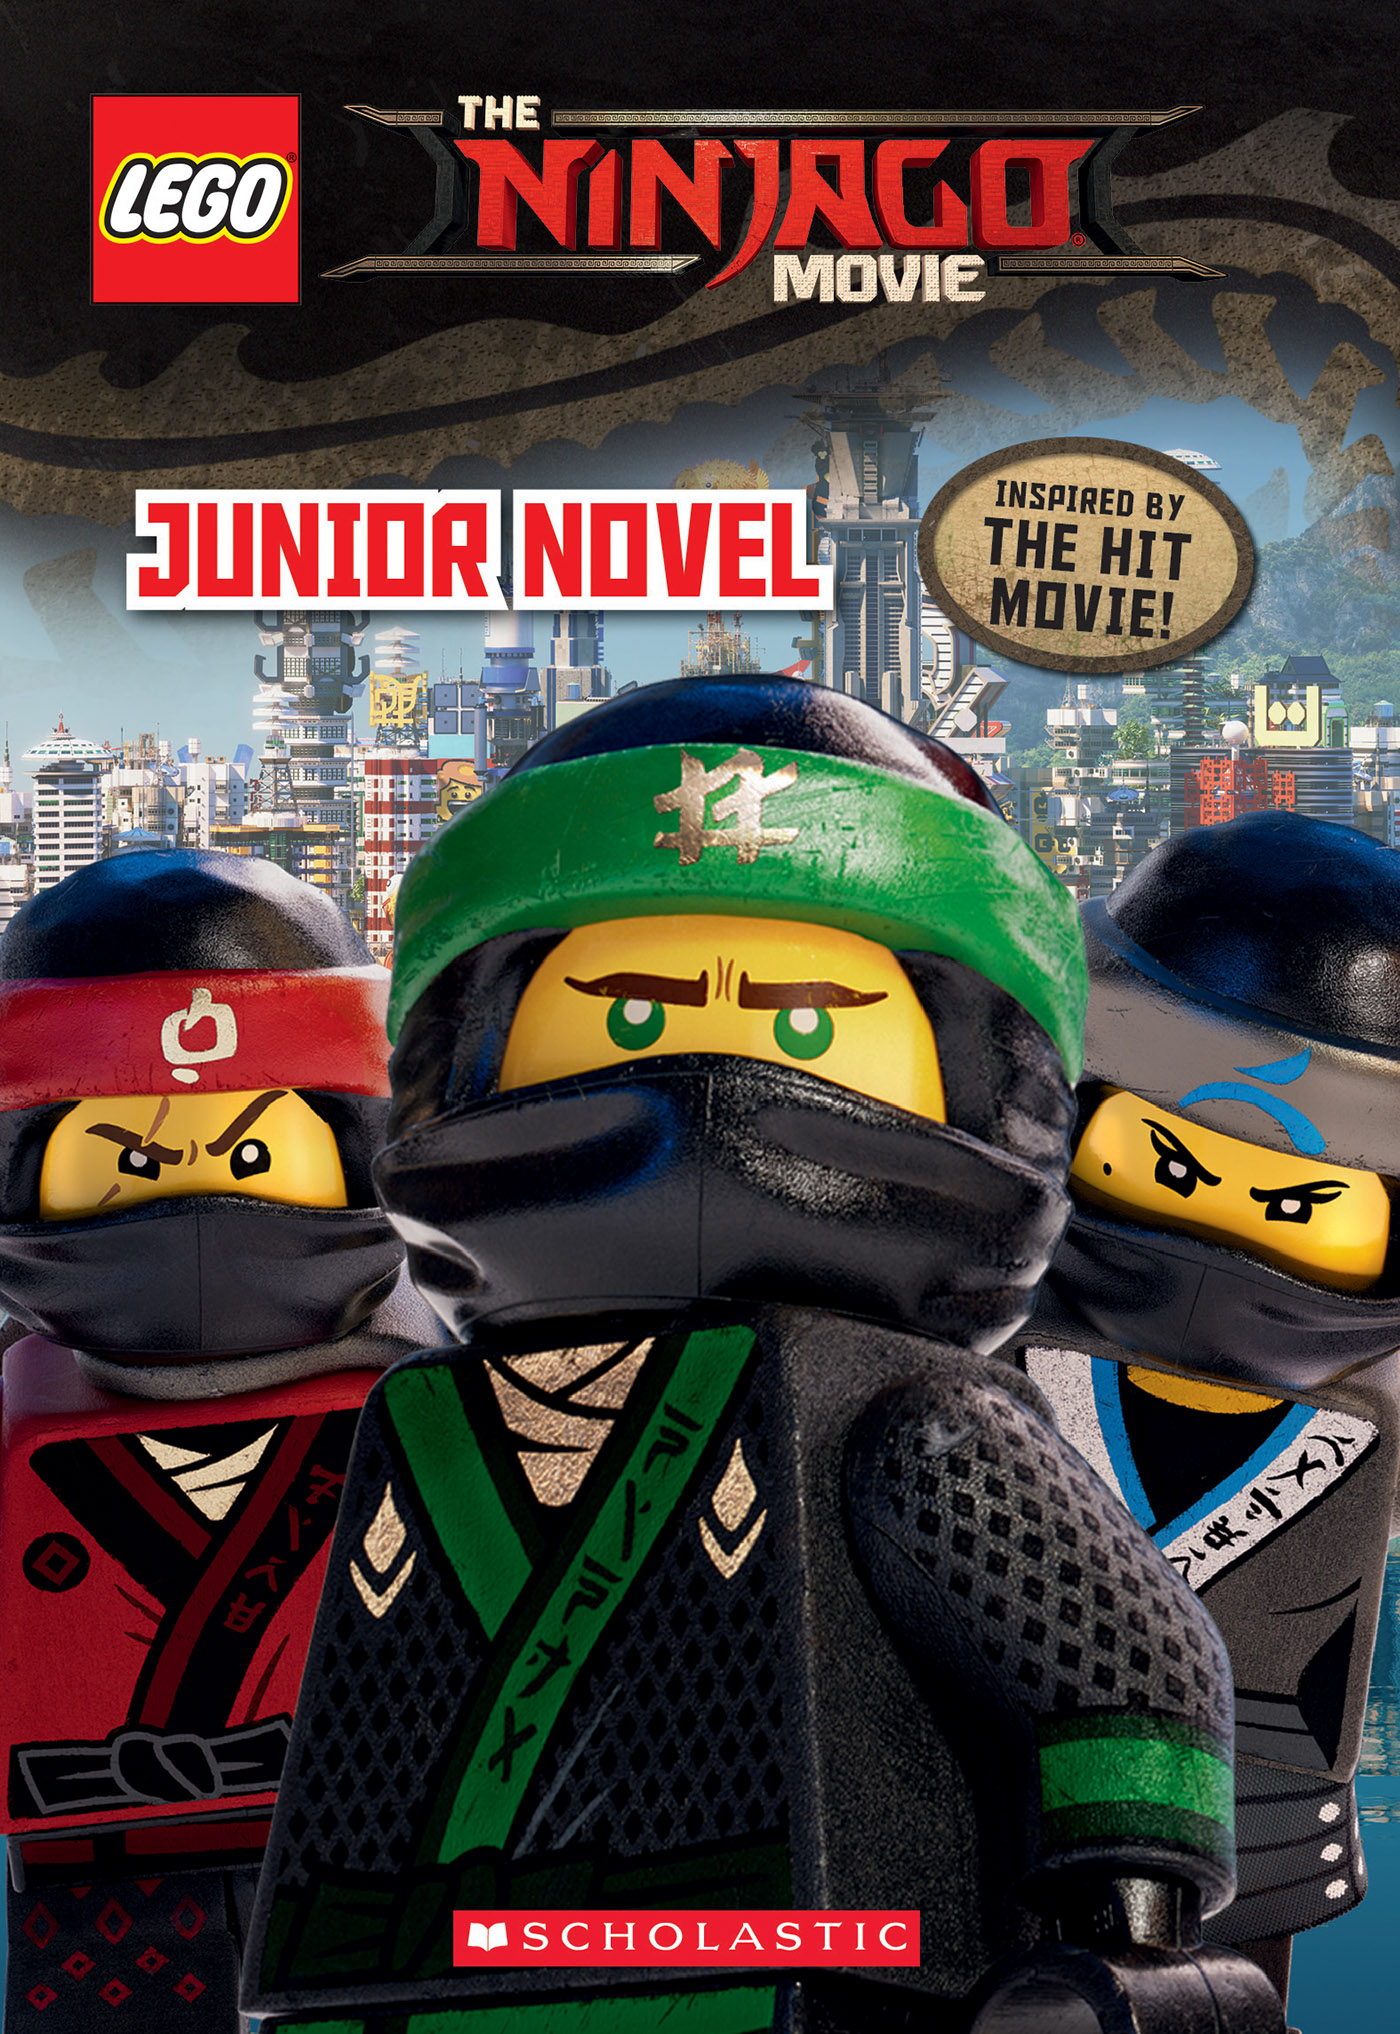 Junior Novel (LEGO NINJAGO Movie)